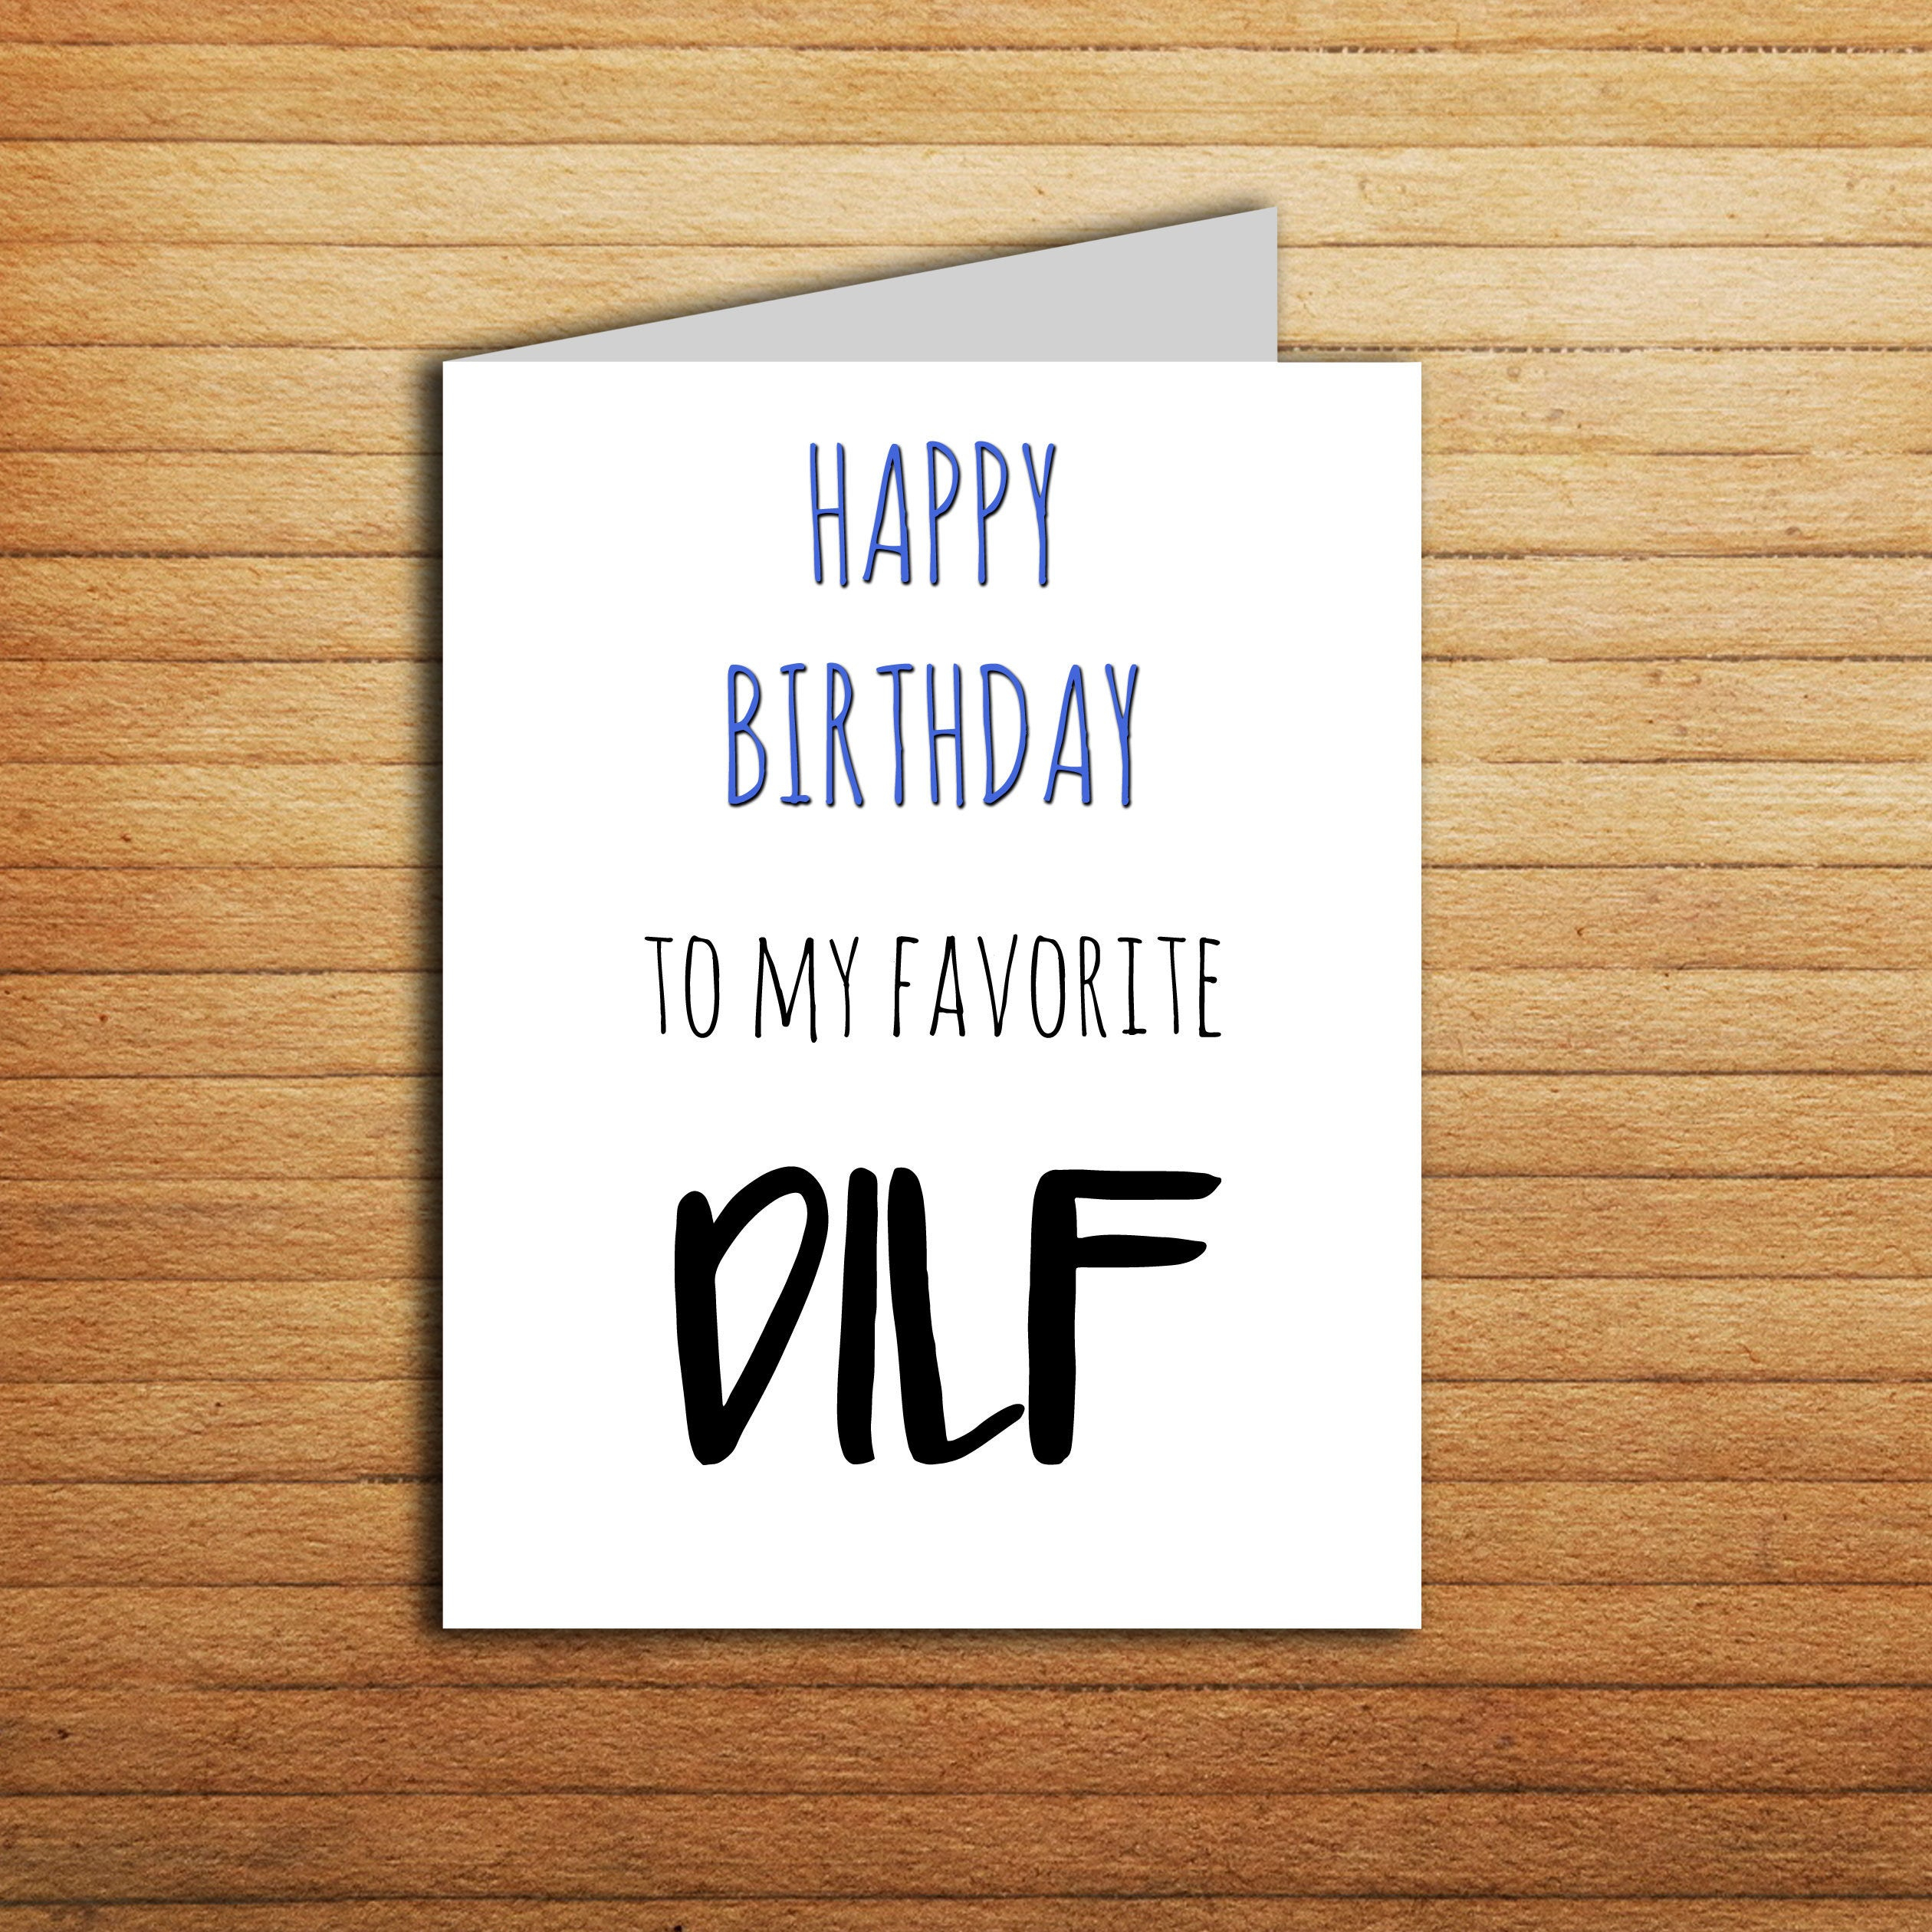 Funny Birthday Card Ideas For Boyfriend Dilf Card Funny Birthday Card For Boyfriend Gift From Girlfriend Sexy Rude Naughty Cards For Husband Printable Mature Male Hub Bday Card